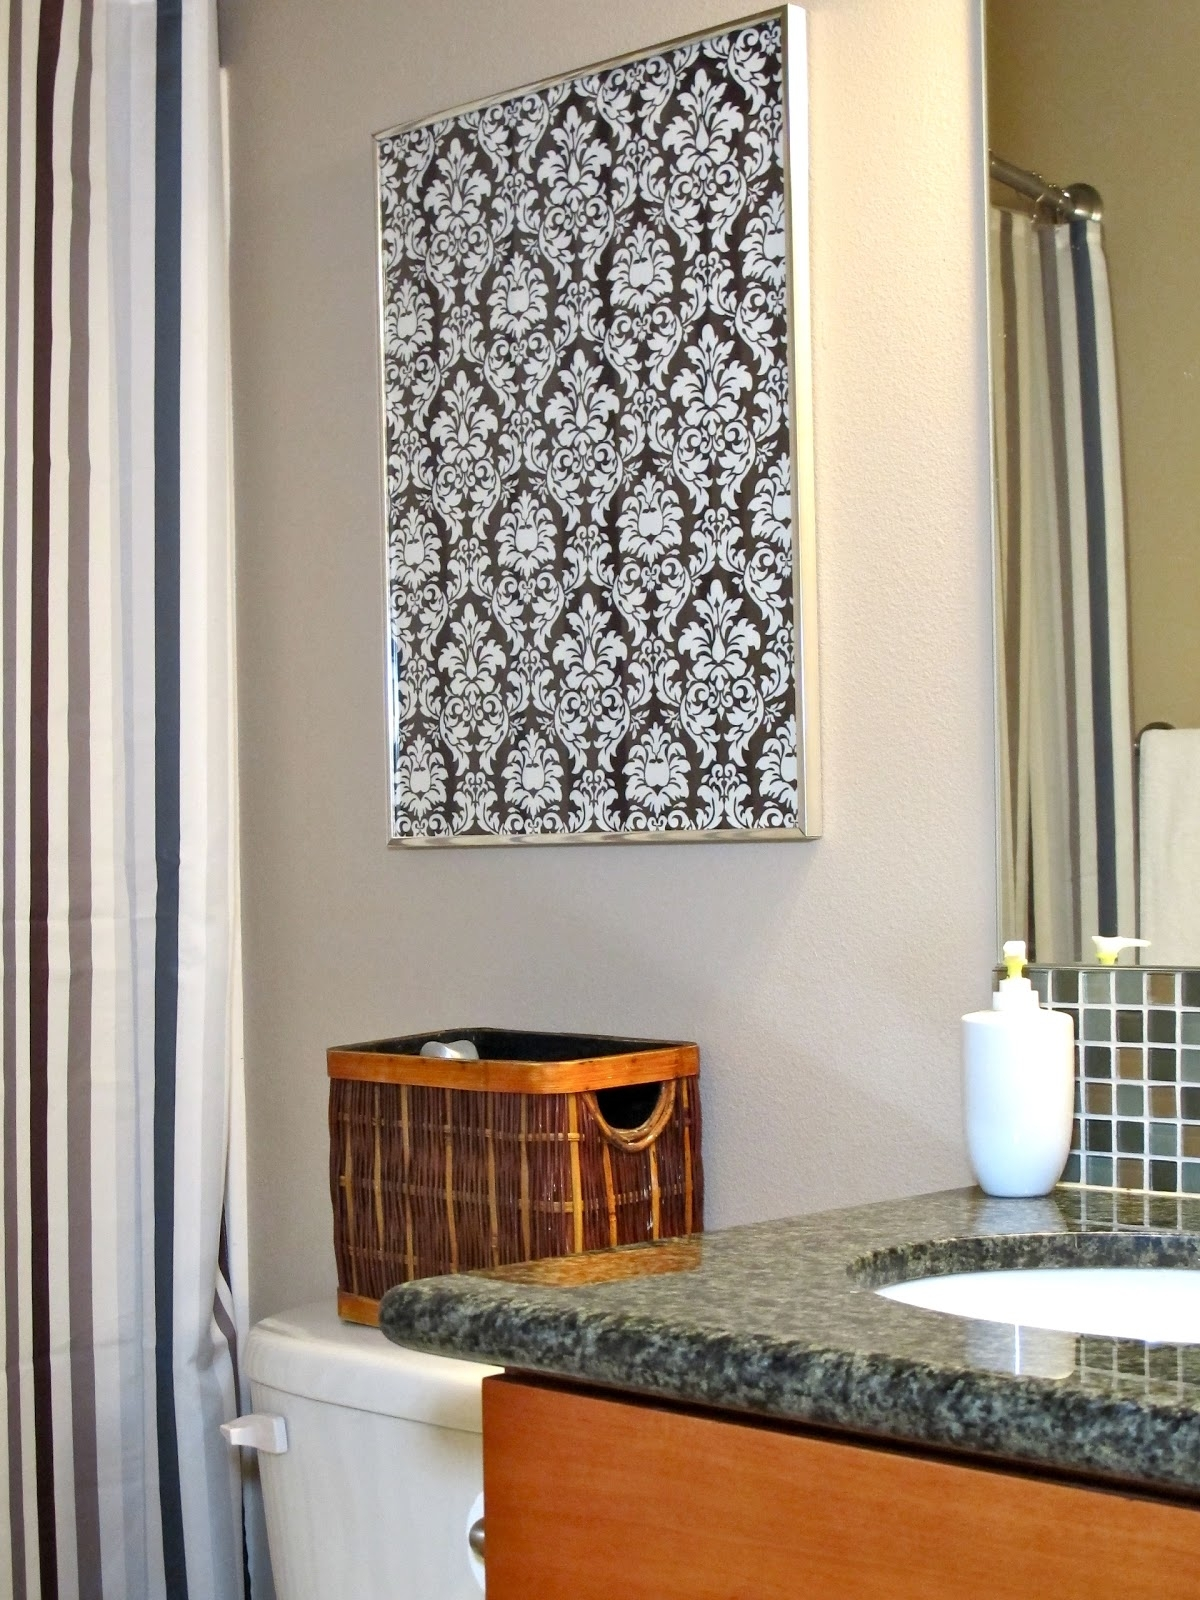 Blukatkraft: Diy Quick Easy Wall Art For Bathroom Within Most Current Damask Fabric Wall Art (View 4 of 15)